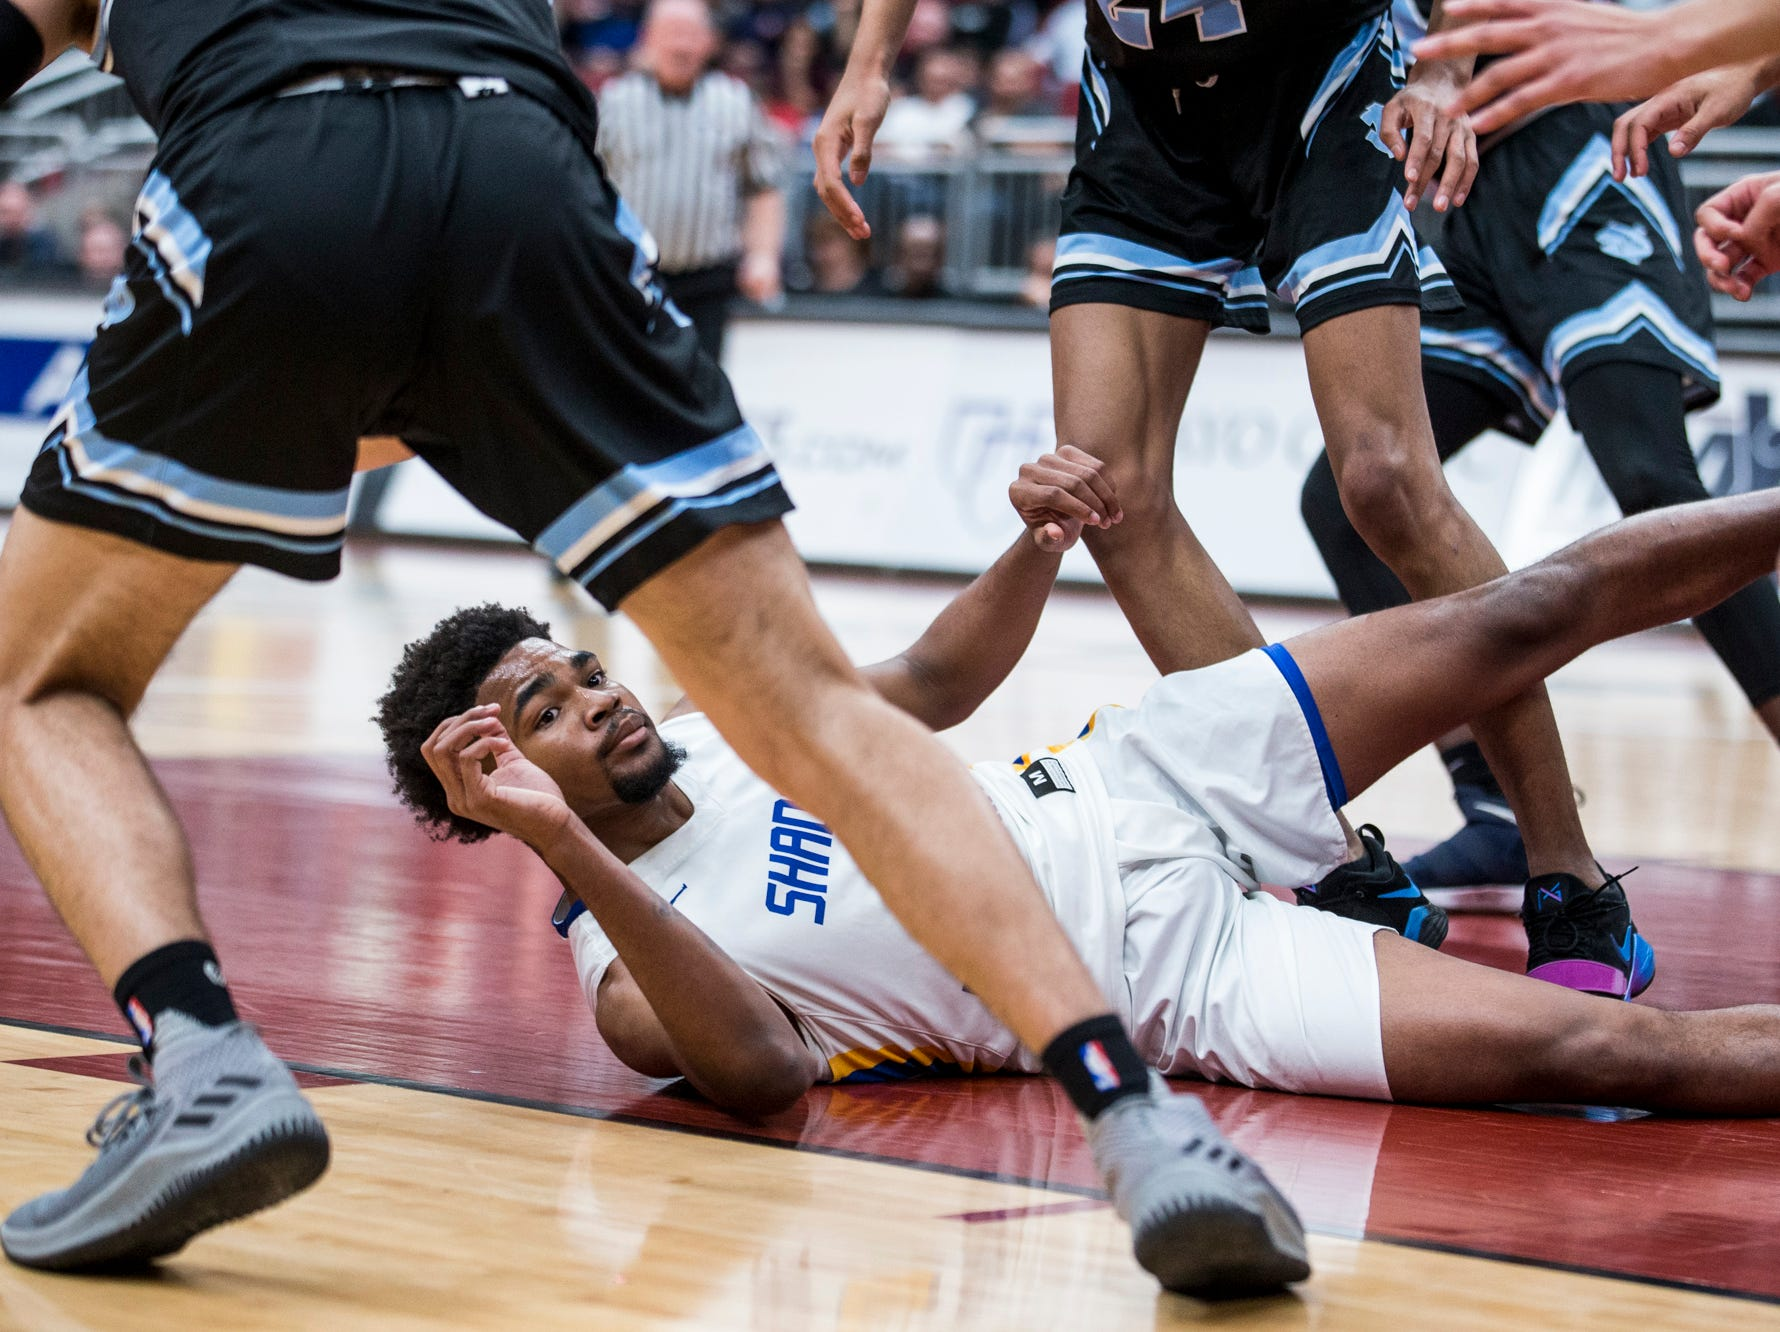 Shadow Mountain's Jalen Williams lies on the ground during a play against Deer Valley during the 4A boys basketball championship on Saturday, Feb. 23, 2019, at Gila River Arena in Glendale, Ariz.